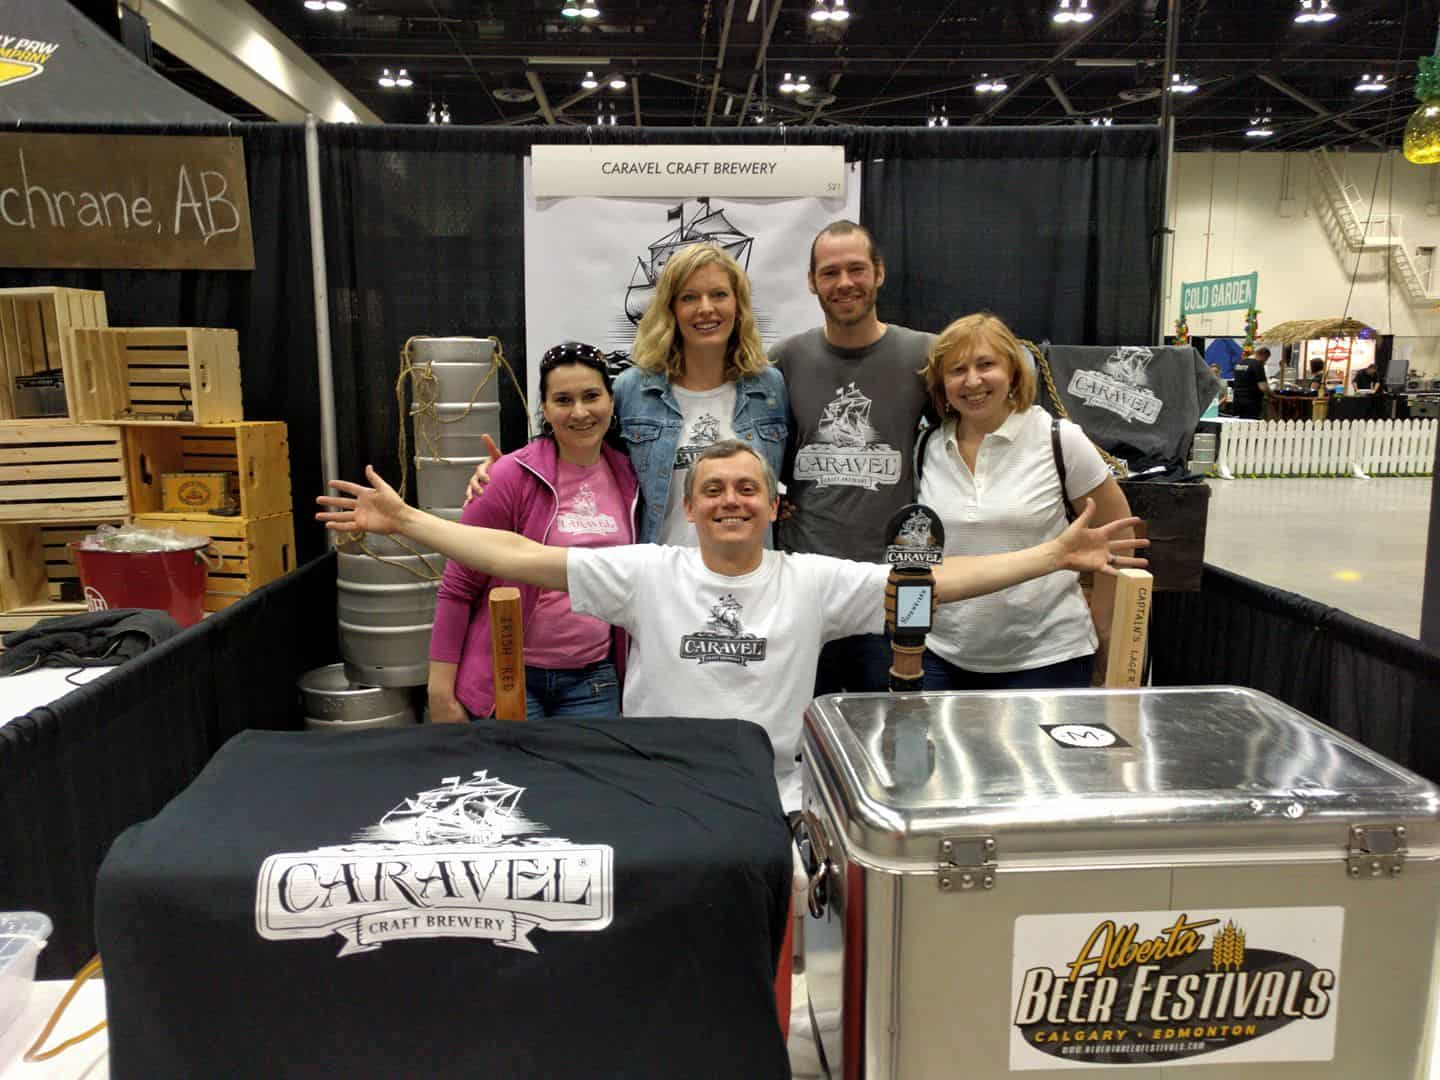 Vlad and the  Caravel  team setting up for  Calgary Beerfest